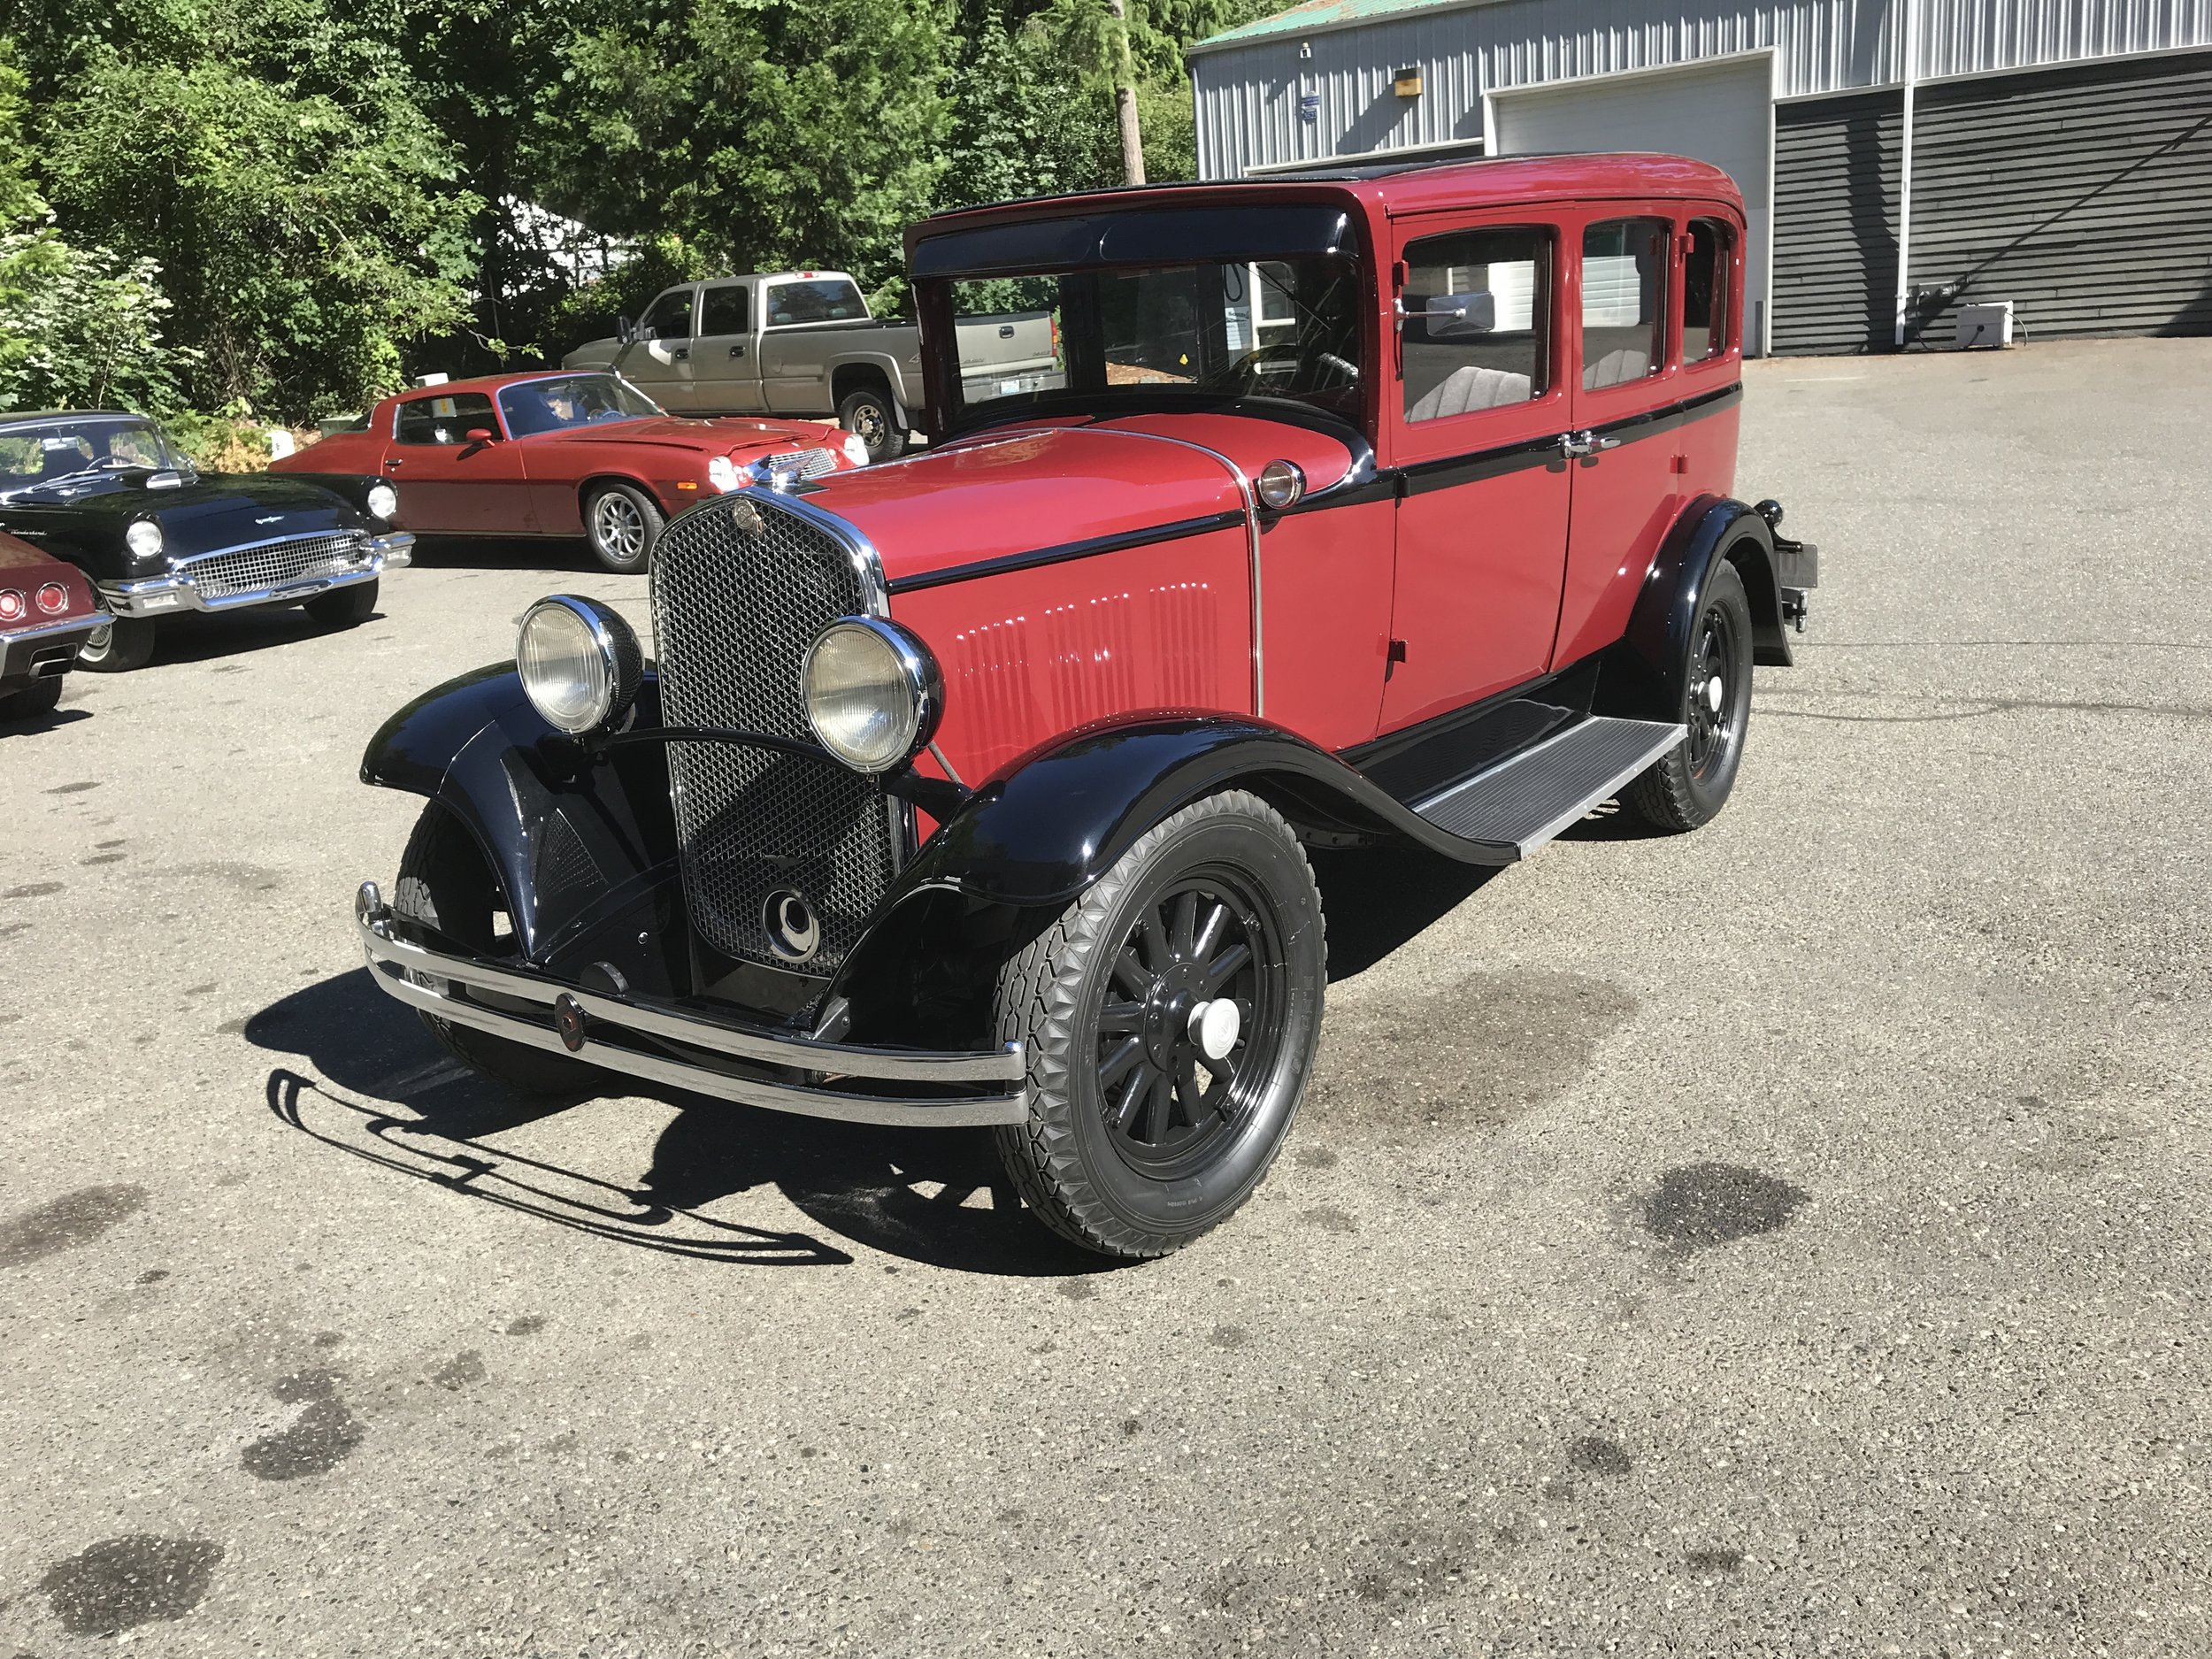 1930 Chrysler CJ-6.JPG